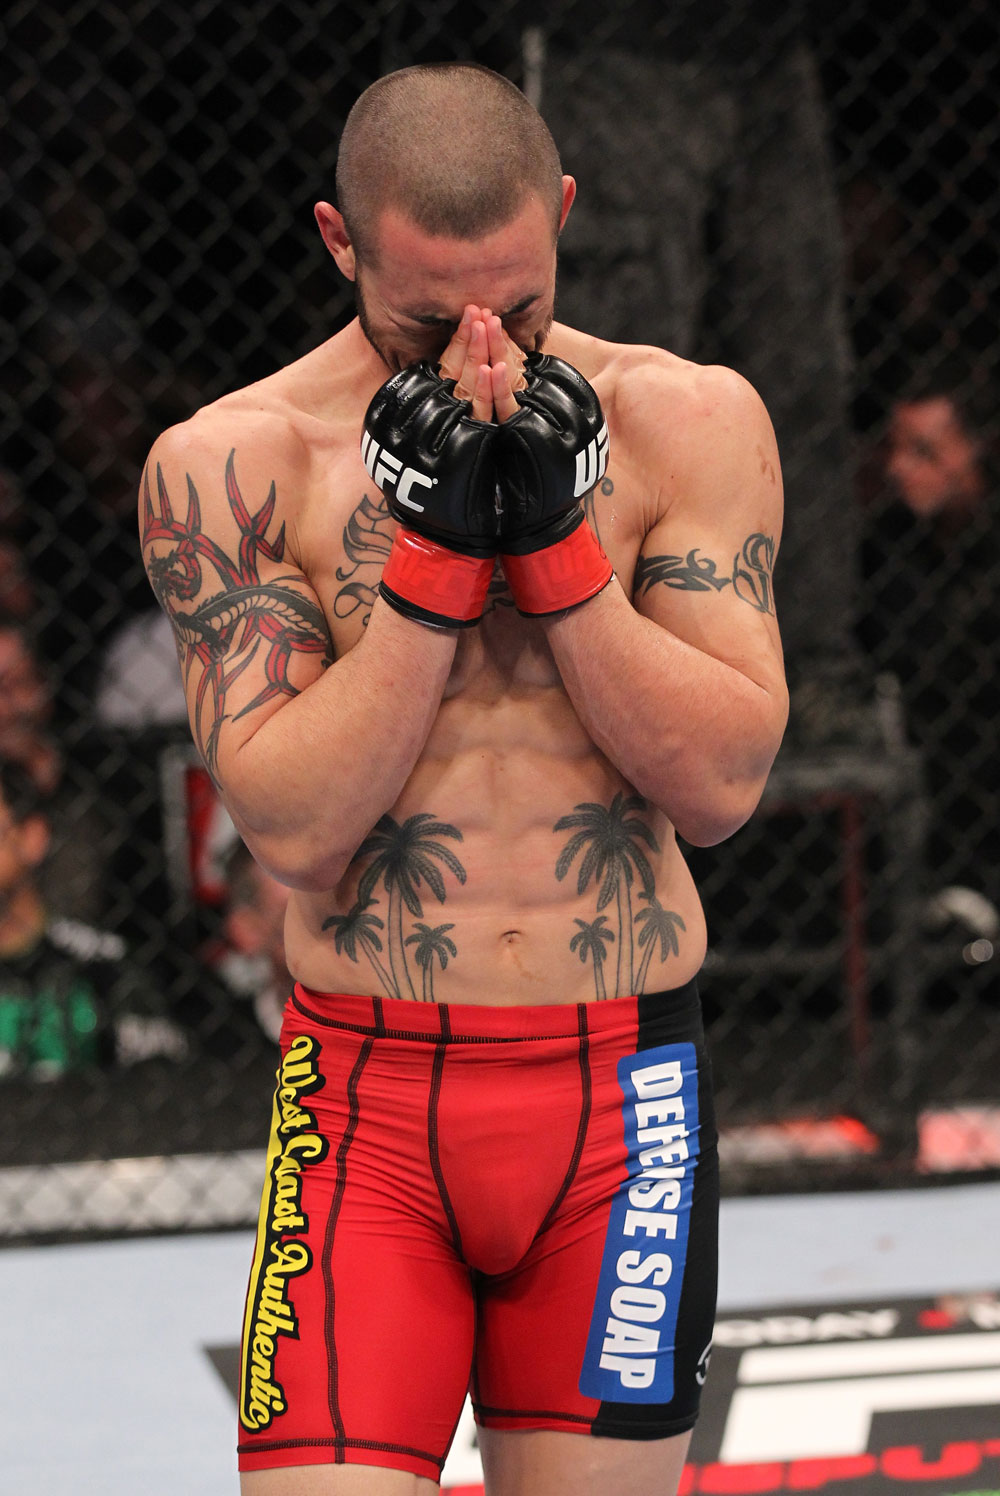 CHICAGO, IL - JANUARY 28:  Cub Swanson reacts after his knockout victory over George Roop during the UFC on FOX event at United Center on January 28, 2012 in Chicago, Illinois.  (Photo by Nick Laham/Zuffa LLC/Zuffa LLC via Getty Images) *** Local Caption *** Cub Swanson